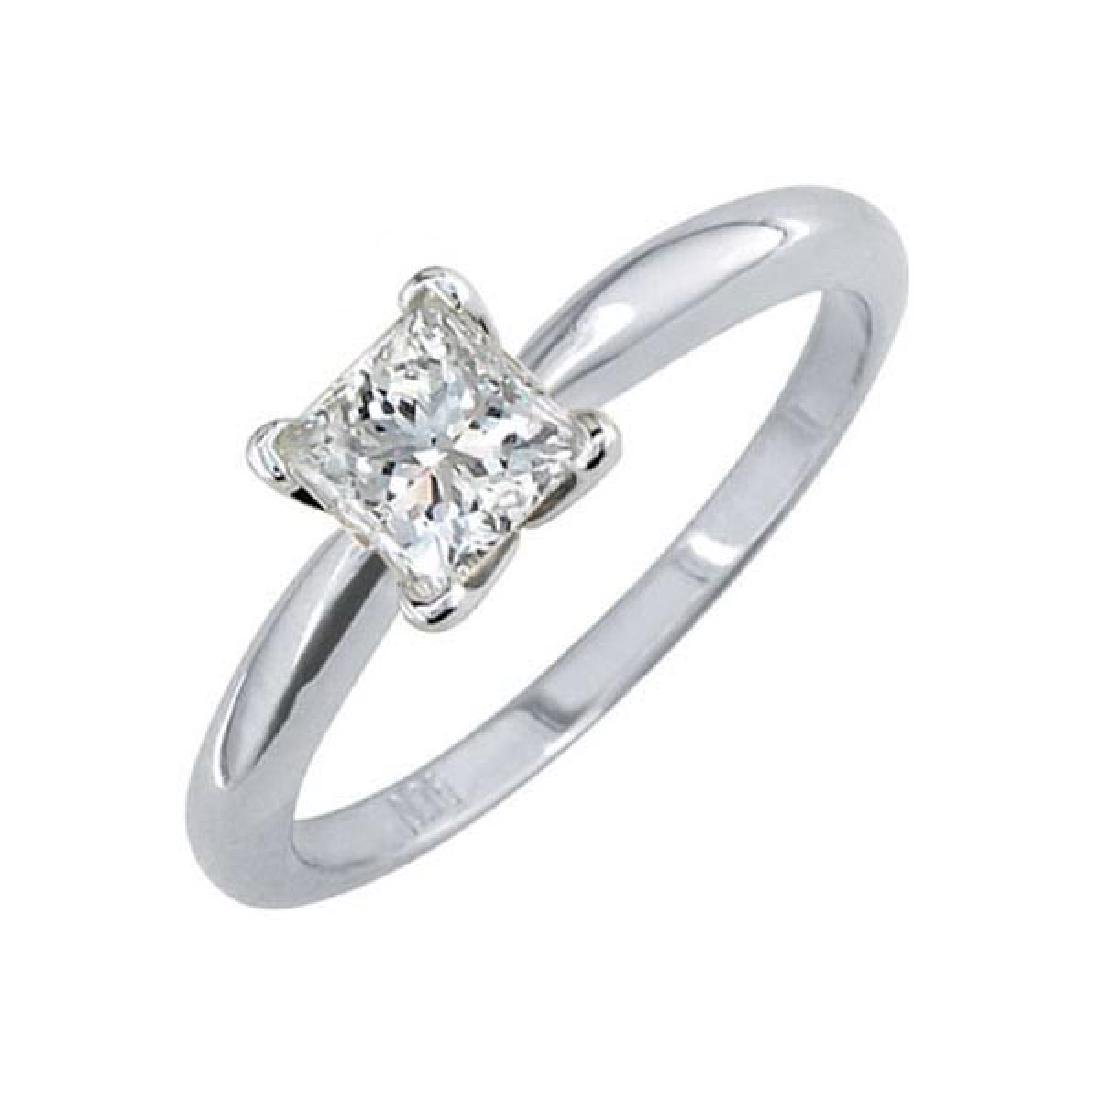 Certified 1.2 CTW Princess Diamond Solitaire 14k Ring I